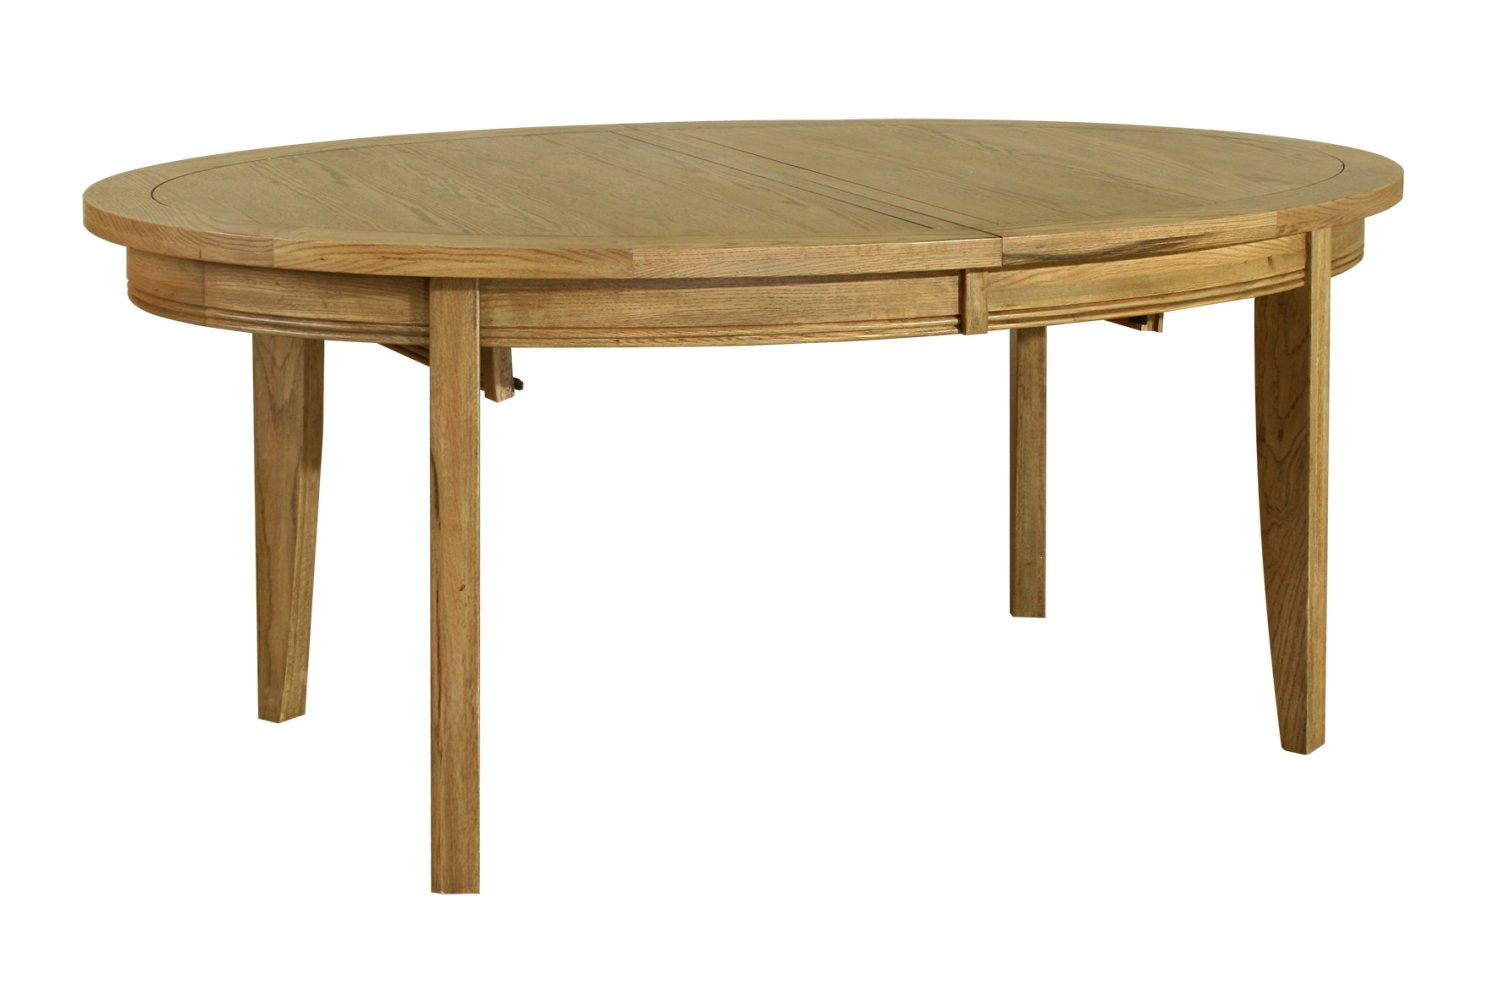 Solid Oak Dining Room Furniture Oval Extending Dining Table EBay